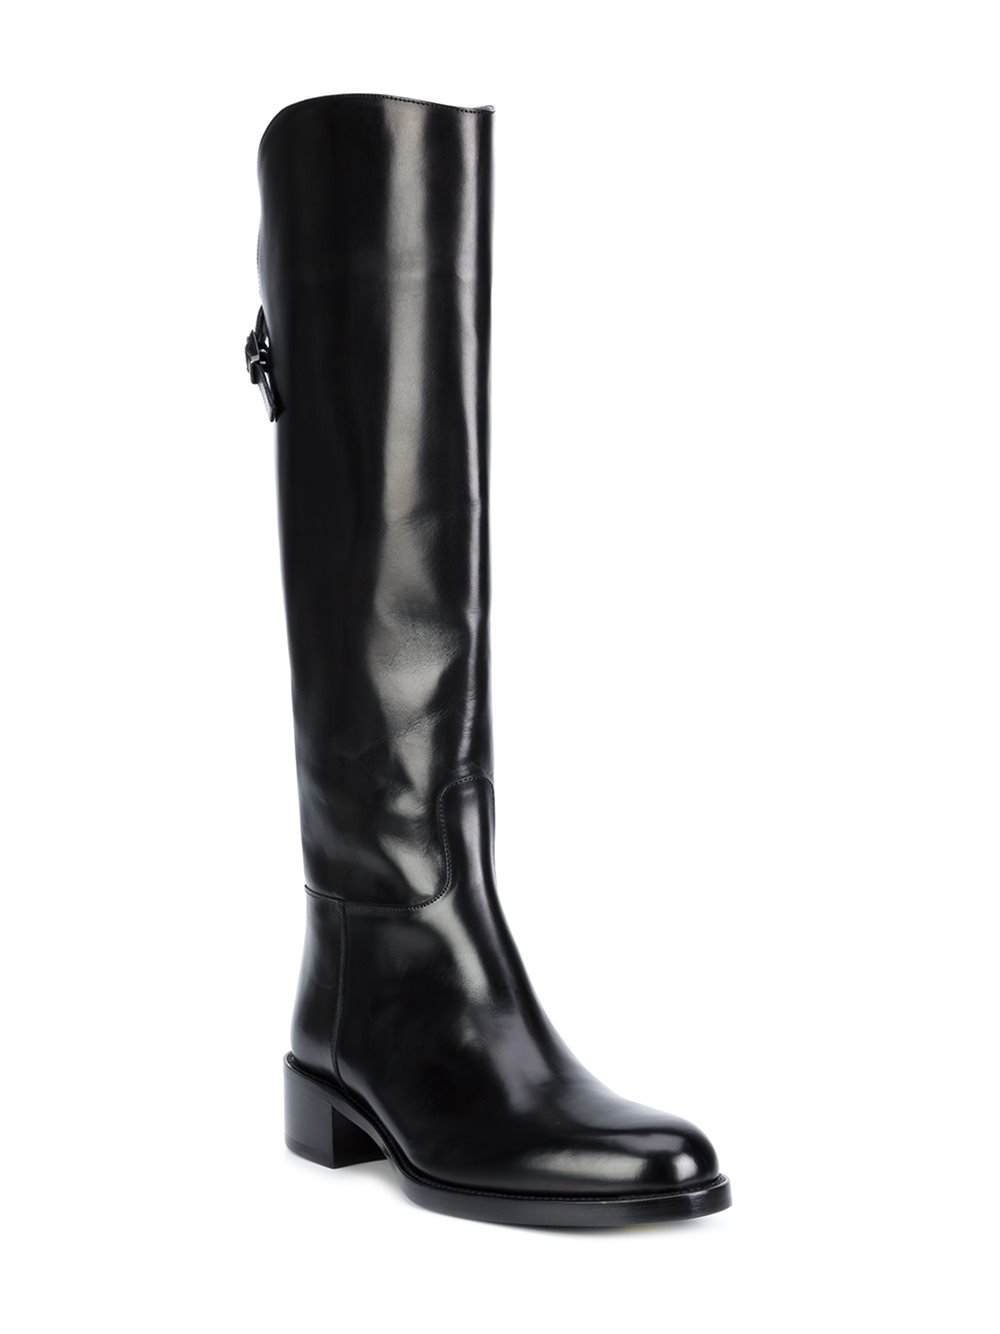 Sartore Leather Knee Length Boots in Black